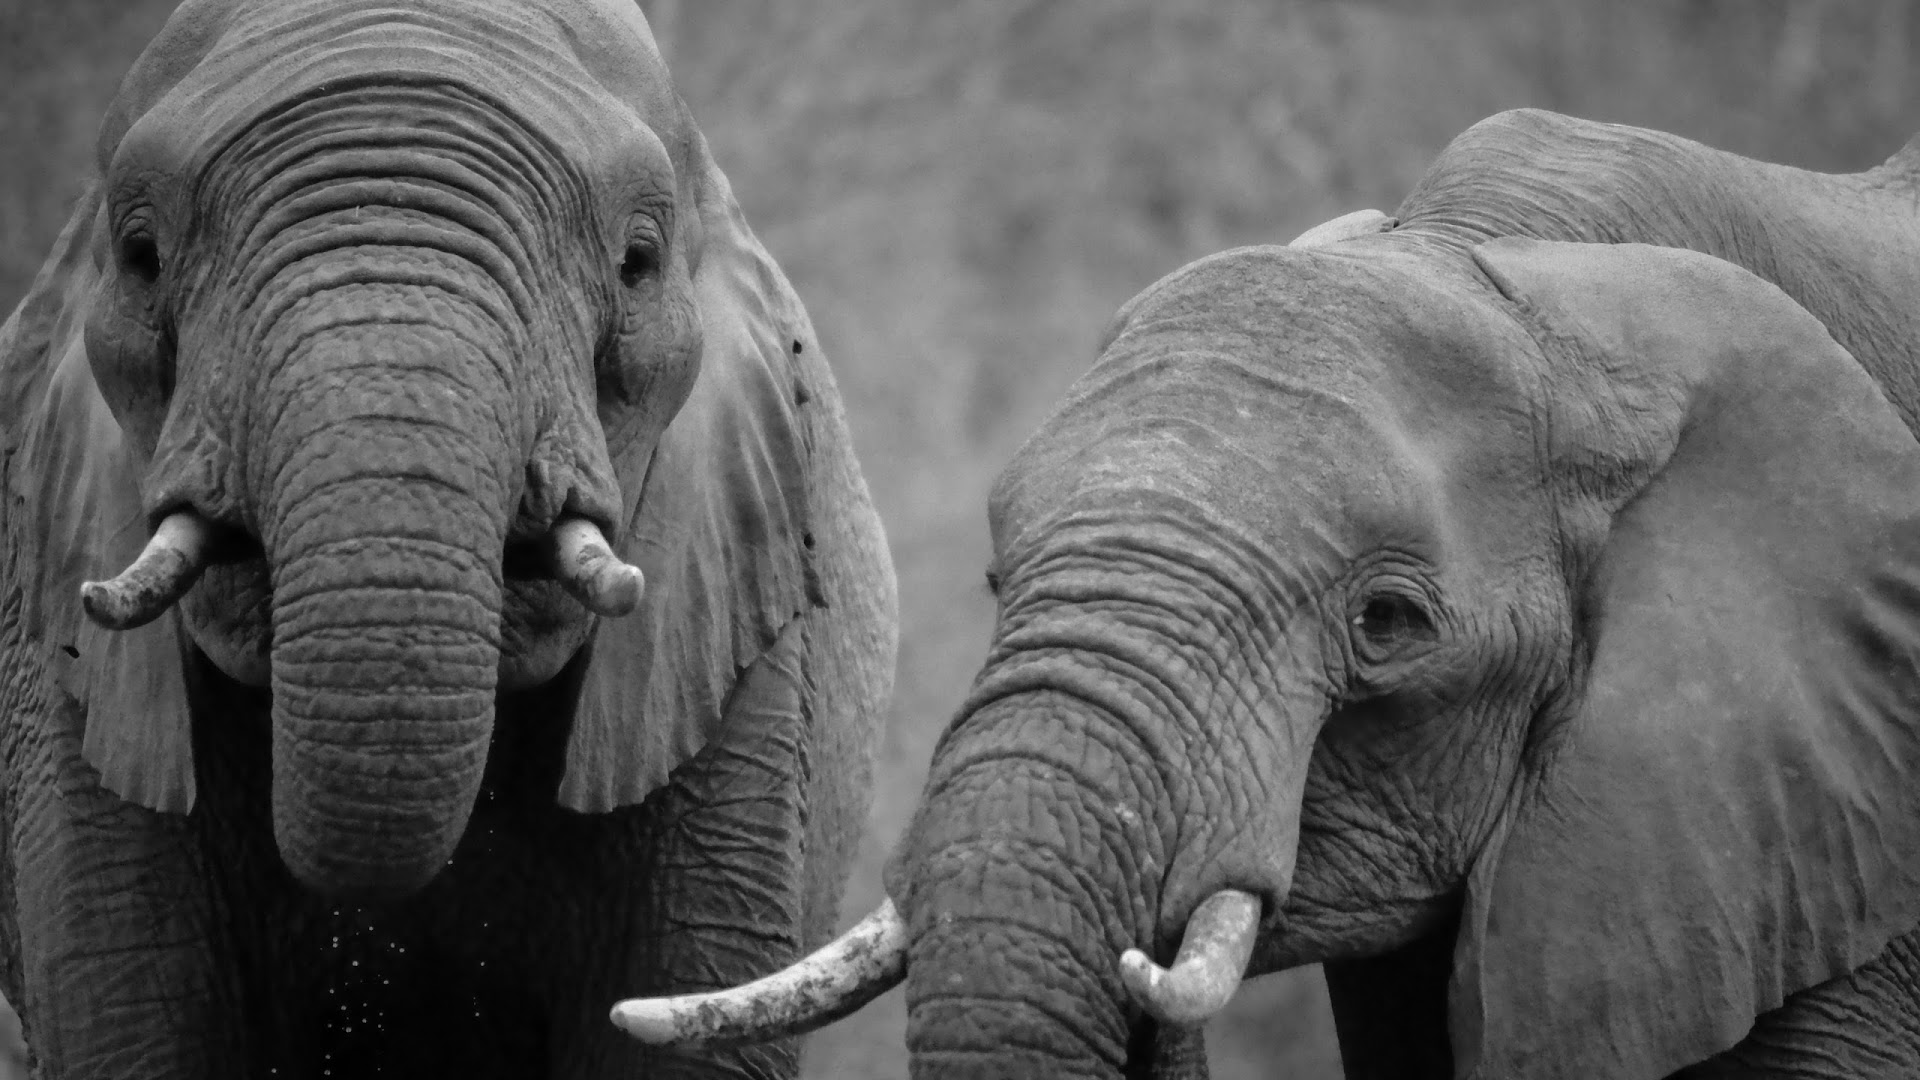 4K Elephant Wallpapers High Quality | Download Free